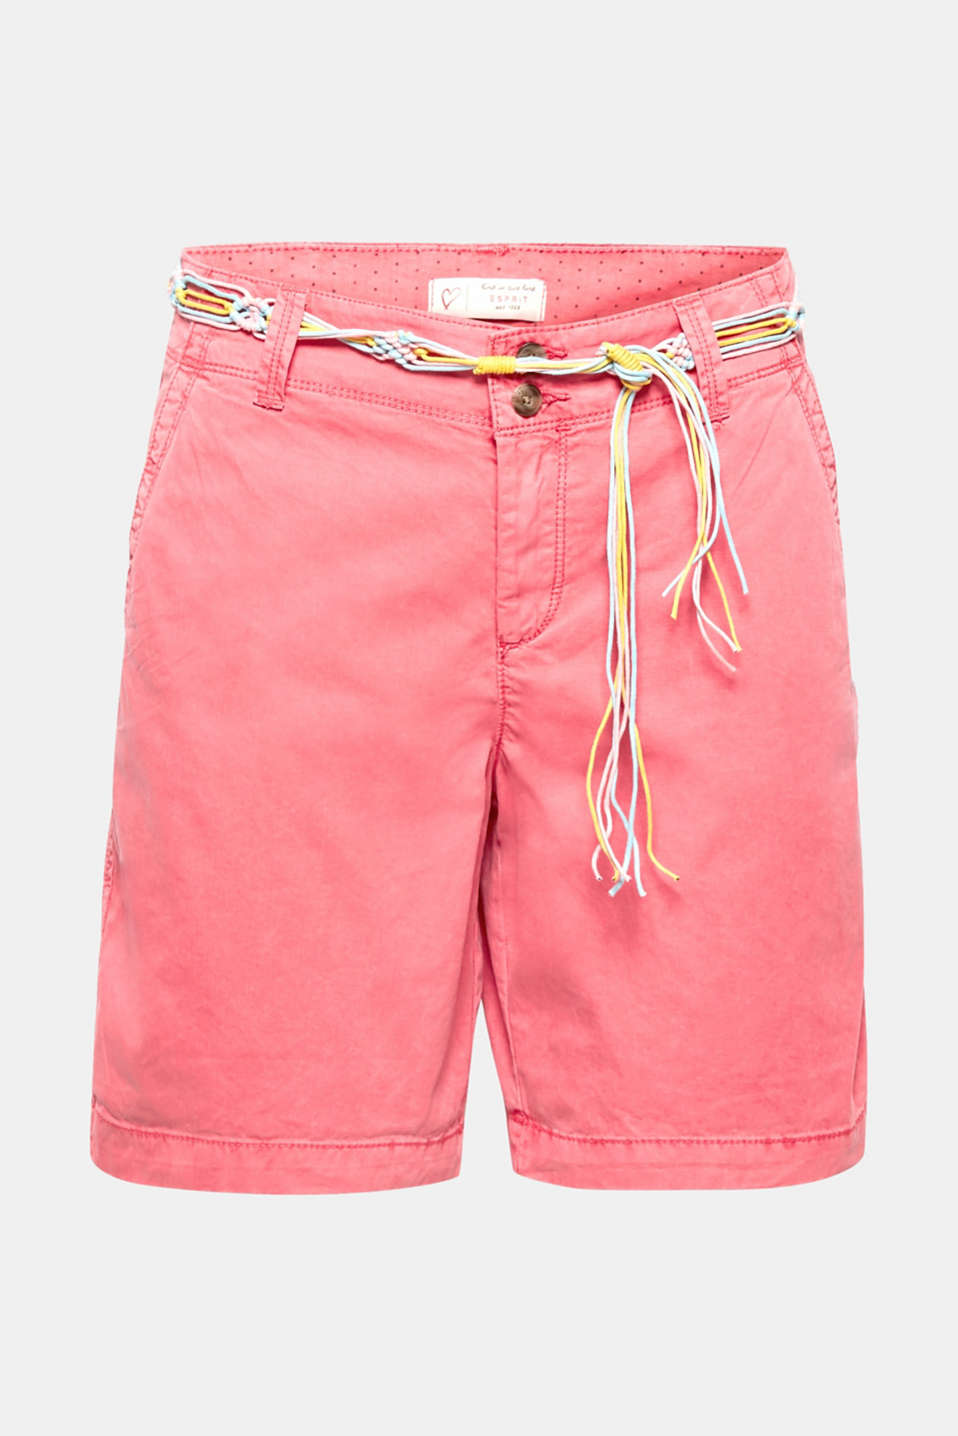 These unfussy shorts made of washed cotton with a colourful, braided tie belt are perfect for casual wear and holidays!